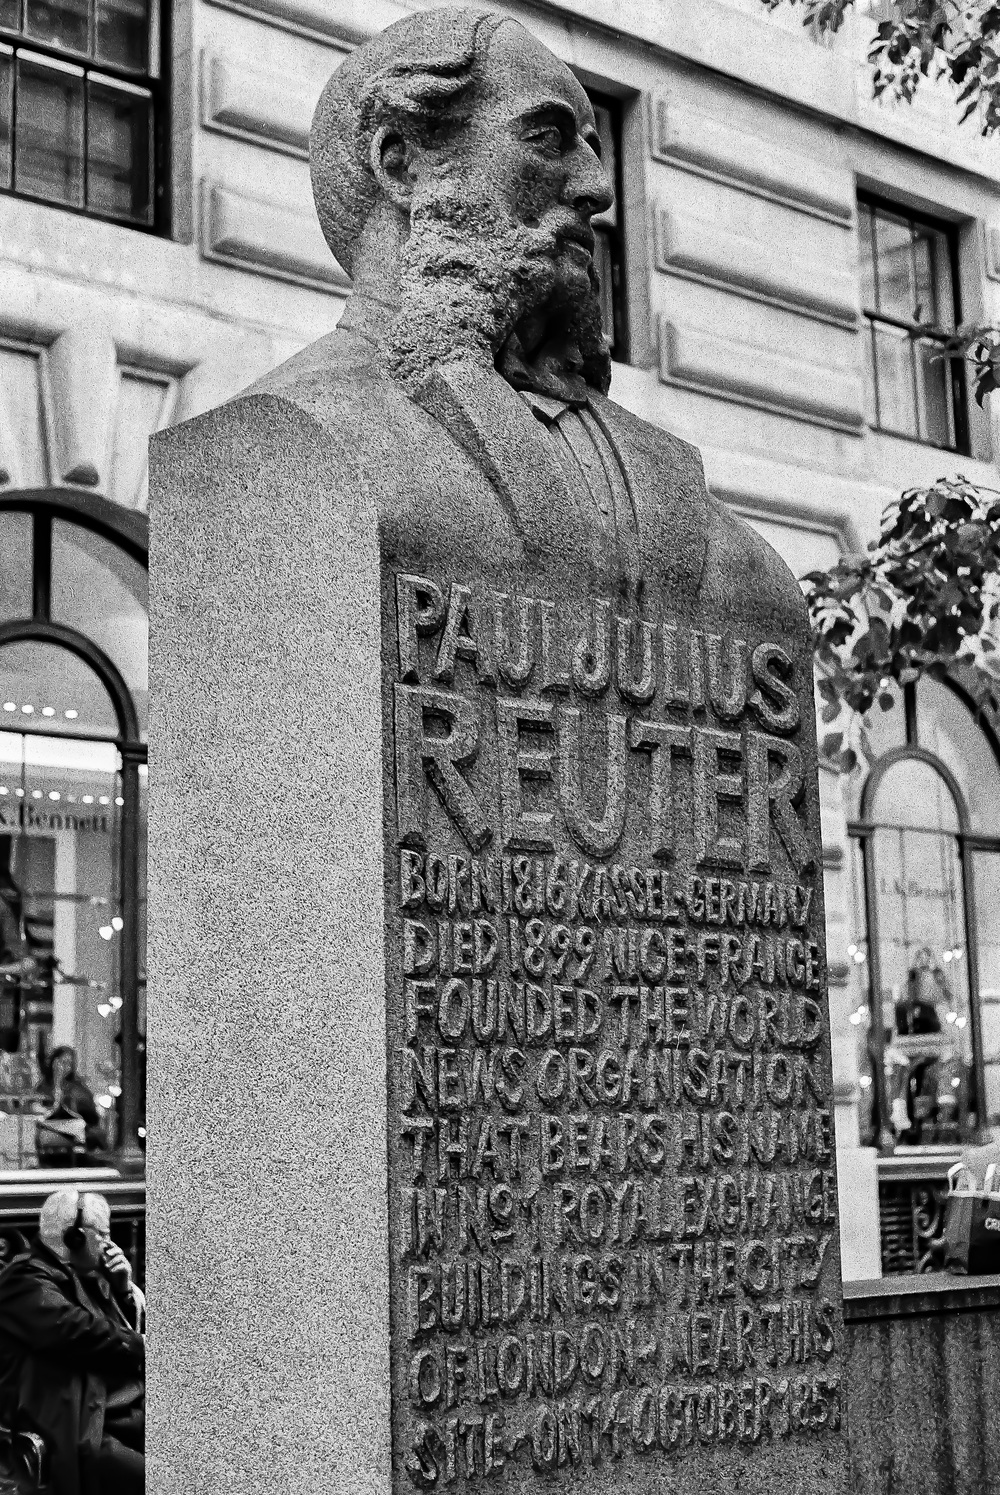 Paul Julius Reuter, father of news gathering, fittingly stands sentinel outside Leica's new store in the City of London. Taken with my M4-P and late-model f/2.8 Elmar on Tri-X. Note that the statue itself has a stone surface with more grain than the Kodak film.